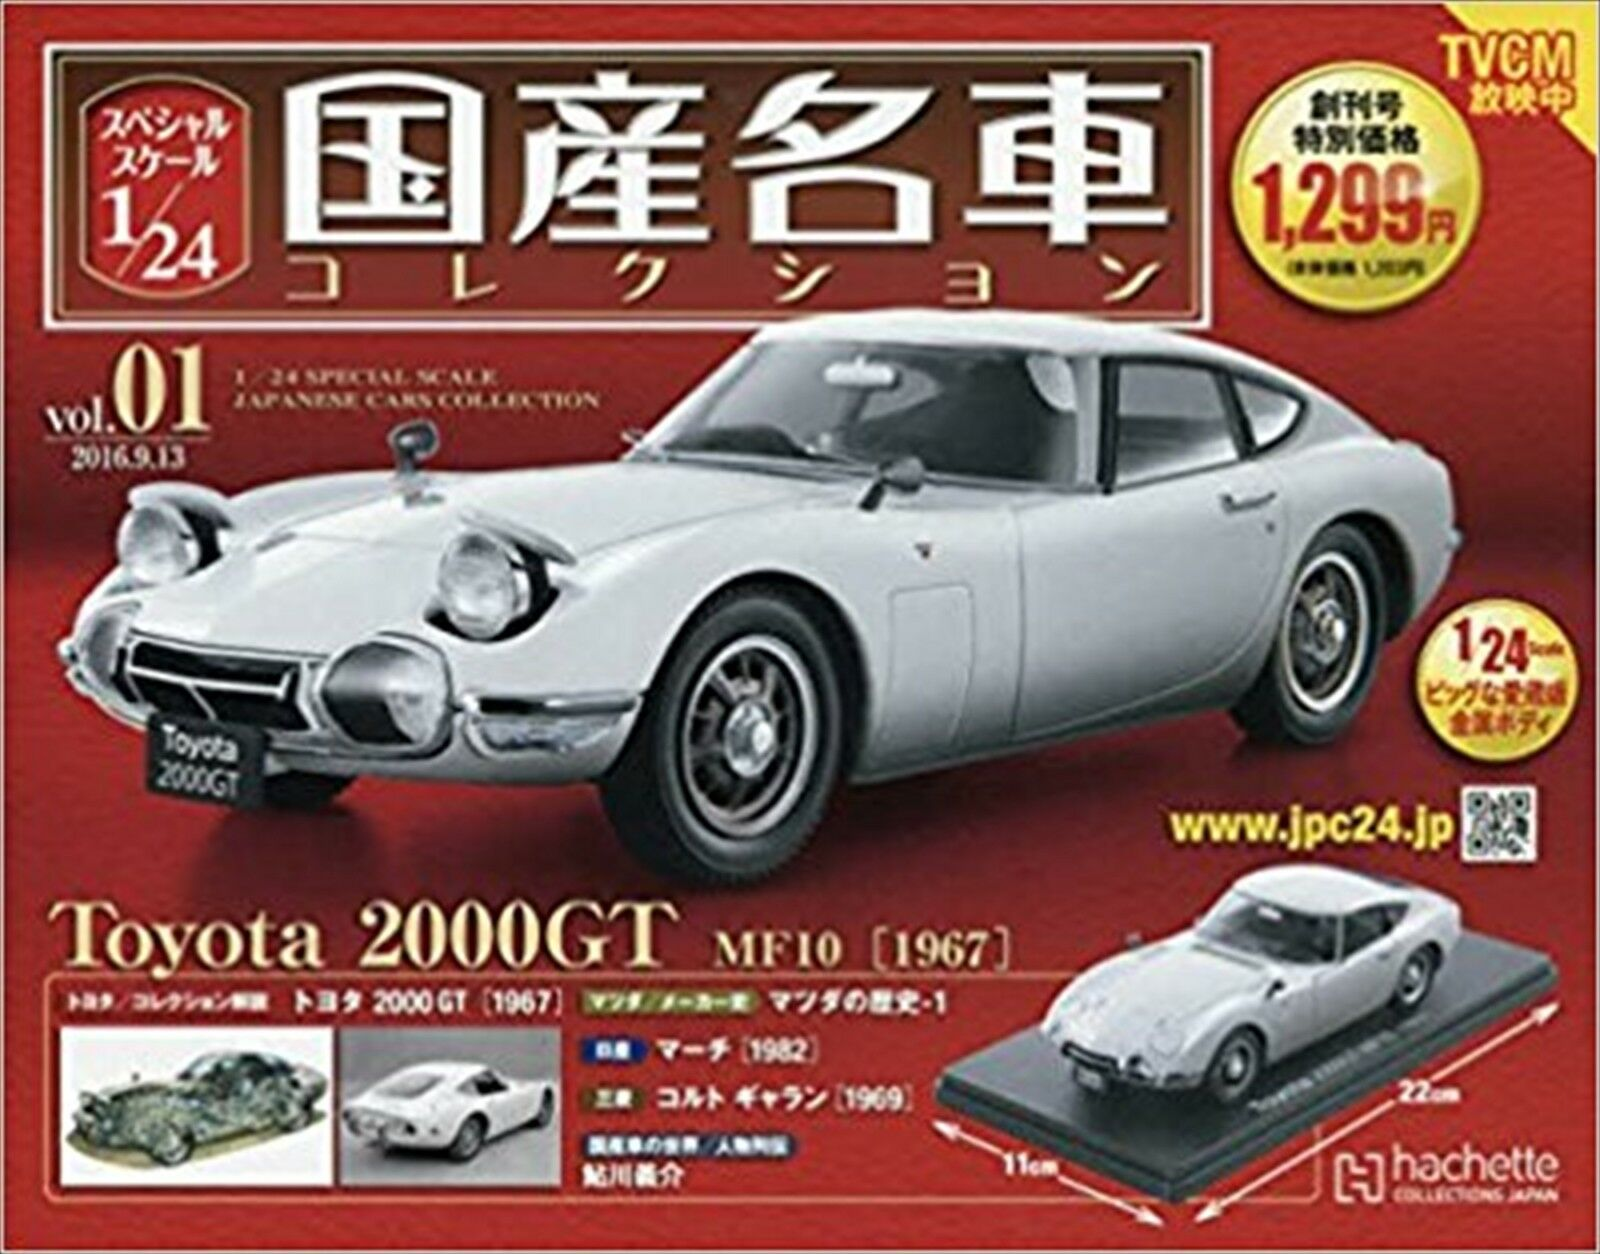 1 24 Special Scale Japanese Cars Collection Vol.01 Toyota 2000Gt 1967